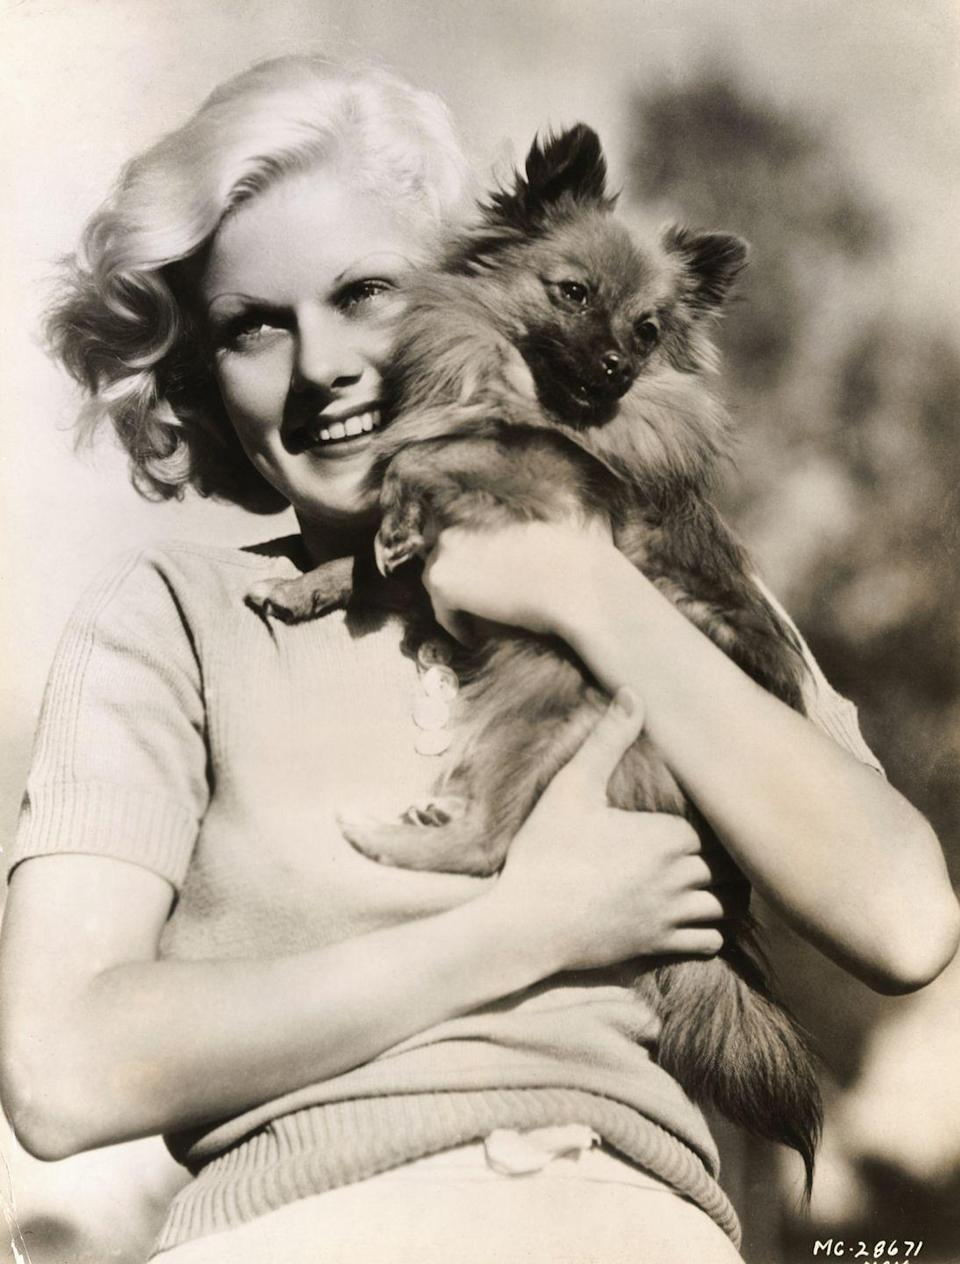 """<p>Known as the original blonde bombshell, Jean Harlow was the <a href=""""https://www.history.com/this-day-in-history/jean-harlow-dies"""" rel=""""nofollow noopener"""" target=""""_blank"""" data-ylk=""""slk:darling of MGM"""" class=""""link rapid-noclick-resp"""">darling of MGM</a> at the beginning of what is considered Hollywood's Golden Age, and her Pekingese, Oscar, was by her side during that time. Here, the actress is seen hugging her dog, who was <a href=""""https://www.imdb.com/name/nm0001318/bio"""" rel=""""nofollow noopener"""" target=""""_blank"""" data-ylk=""""slk:inspiration for her role in"""" class=""""link rapid-noclick-resp"""">inspiration for her role in </a><em><a href=""""https://www.imdb.com/name/nm0001318/bio"""" rel=""""nofollow noopener"""" target=""""_blank"""" data-ylk=""""slk:Dinner at Eight"""" class=""""link rapid-noclick-resp"""">Dinner at Eight</a>. </em></p>"""